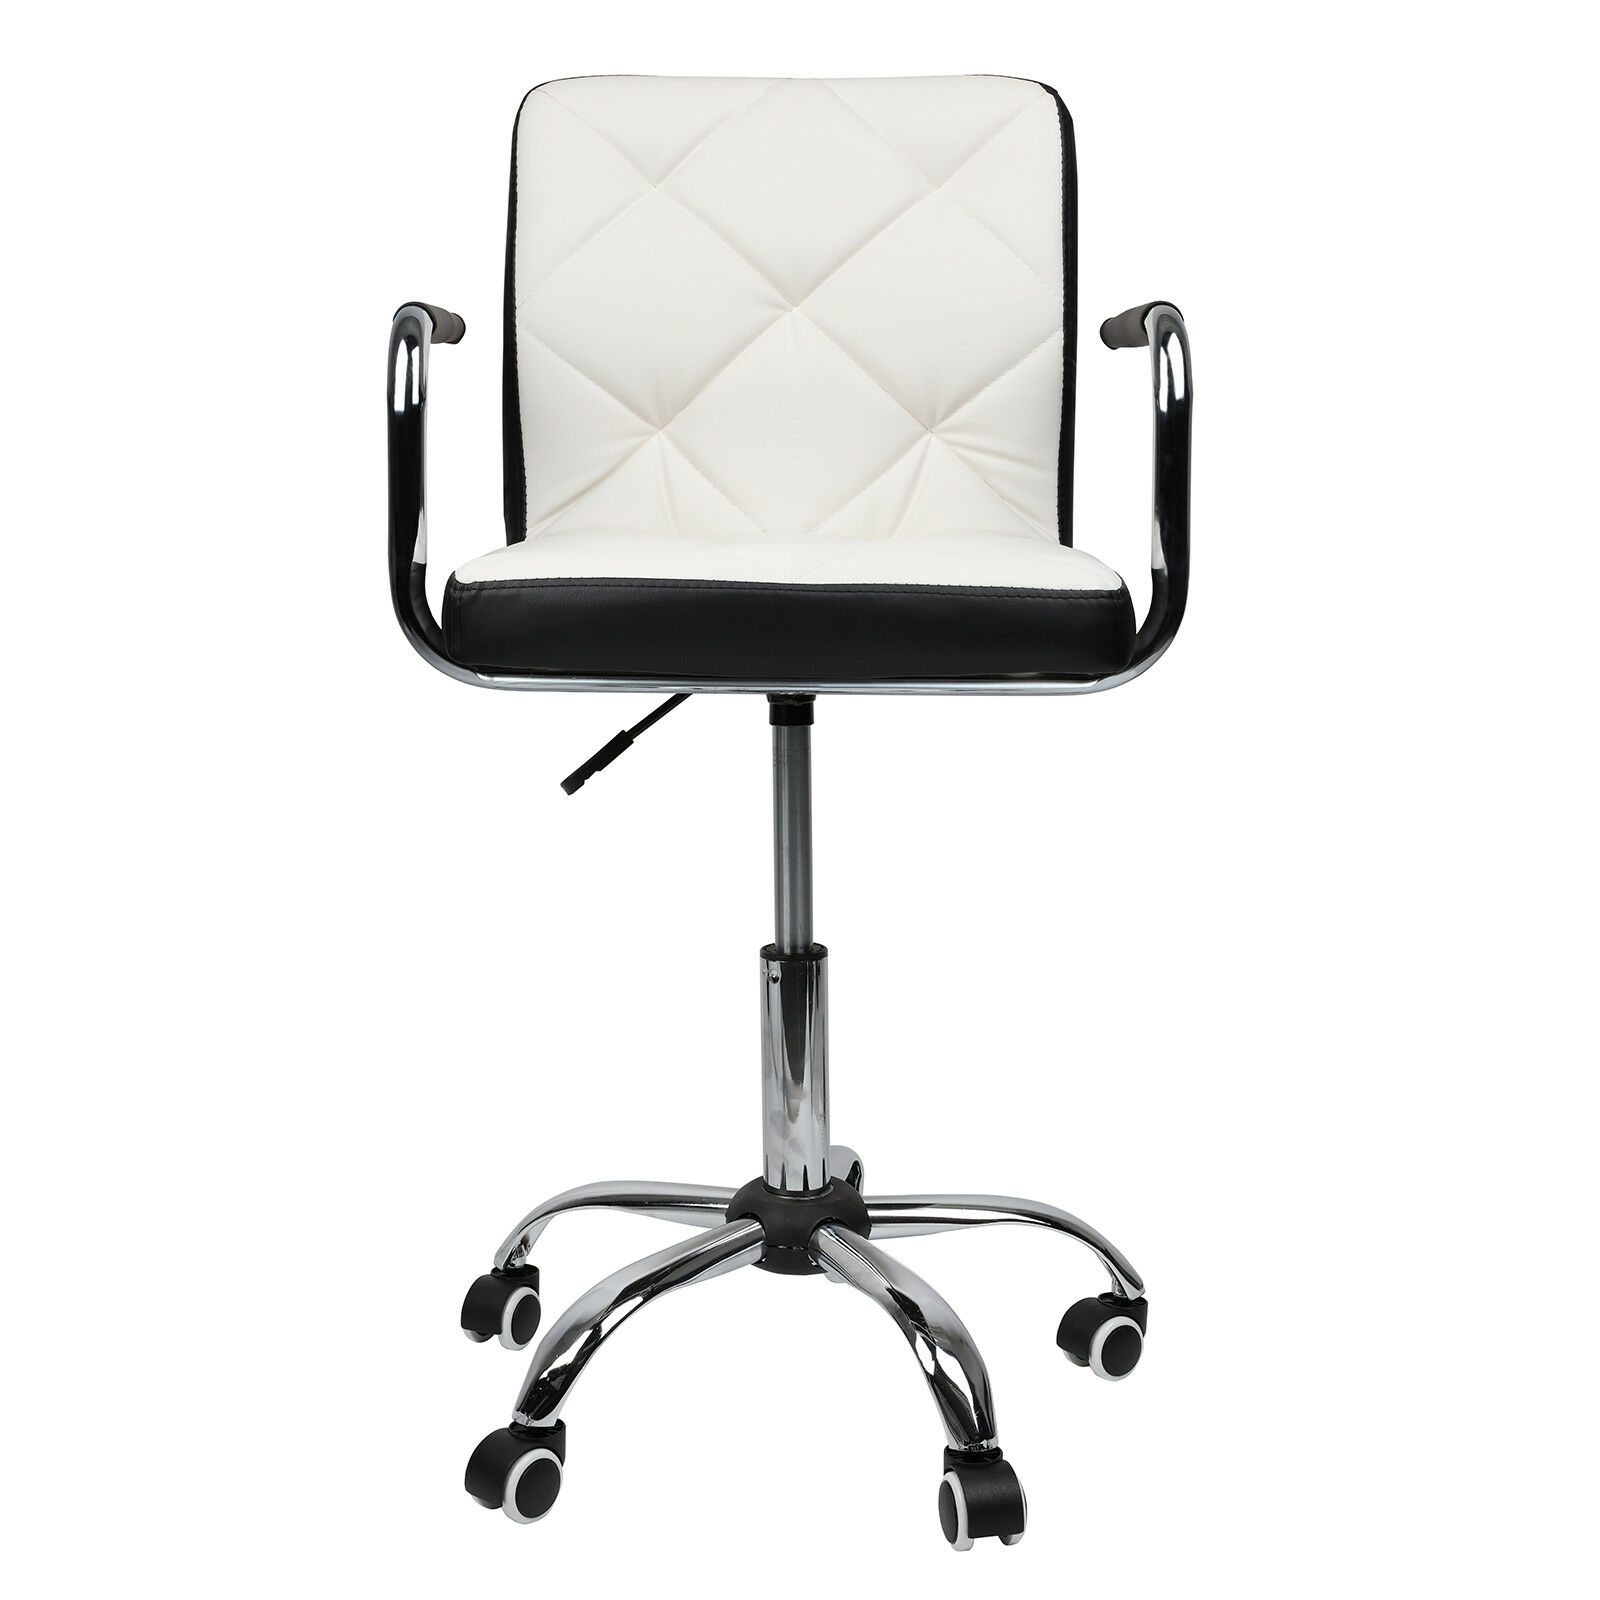 Modern Pu Leather Office Desk Computer Chair Seat Swivel